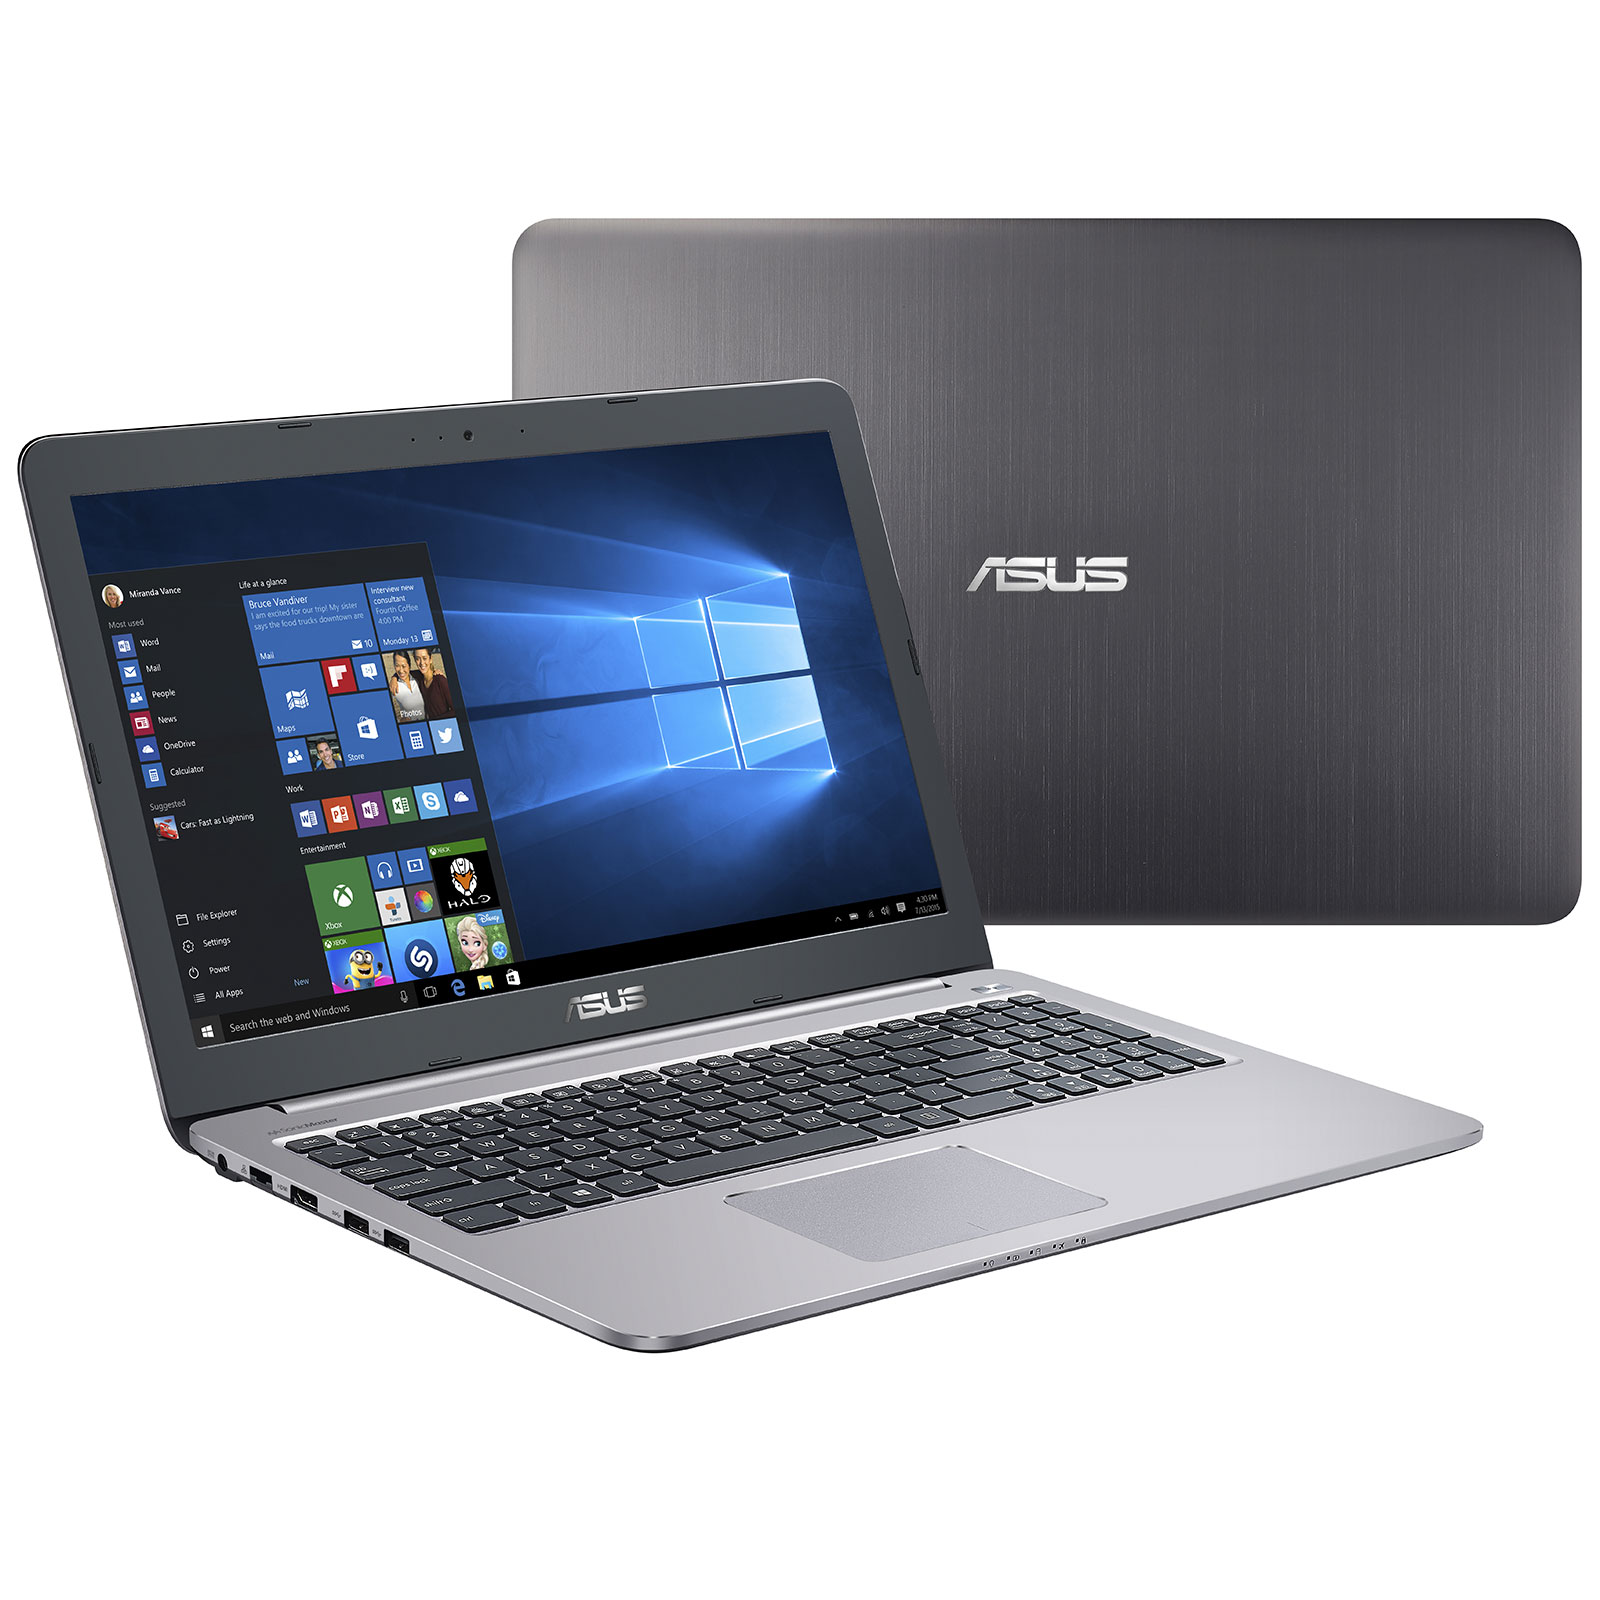 asus k501uw dm013t pc portable asus sur ldlc. Black Bedroom Furniture Sets. Home Design Ideas